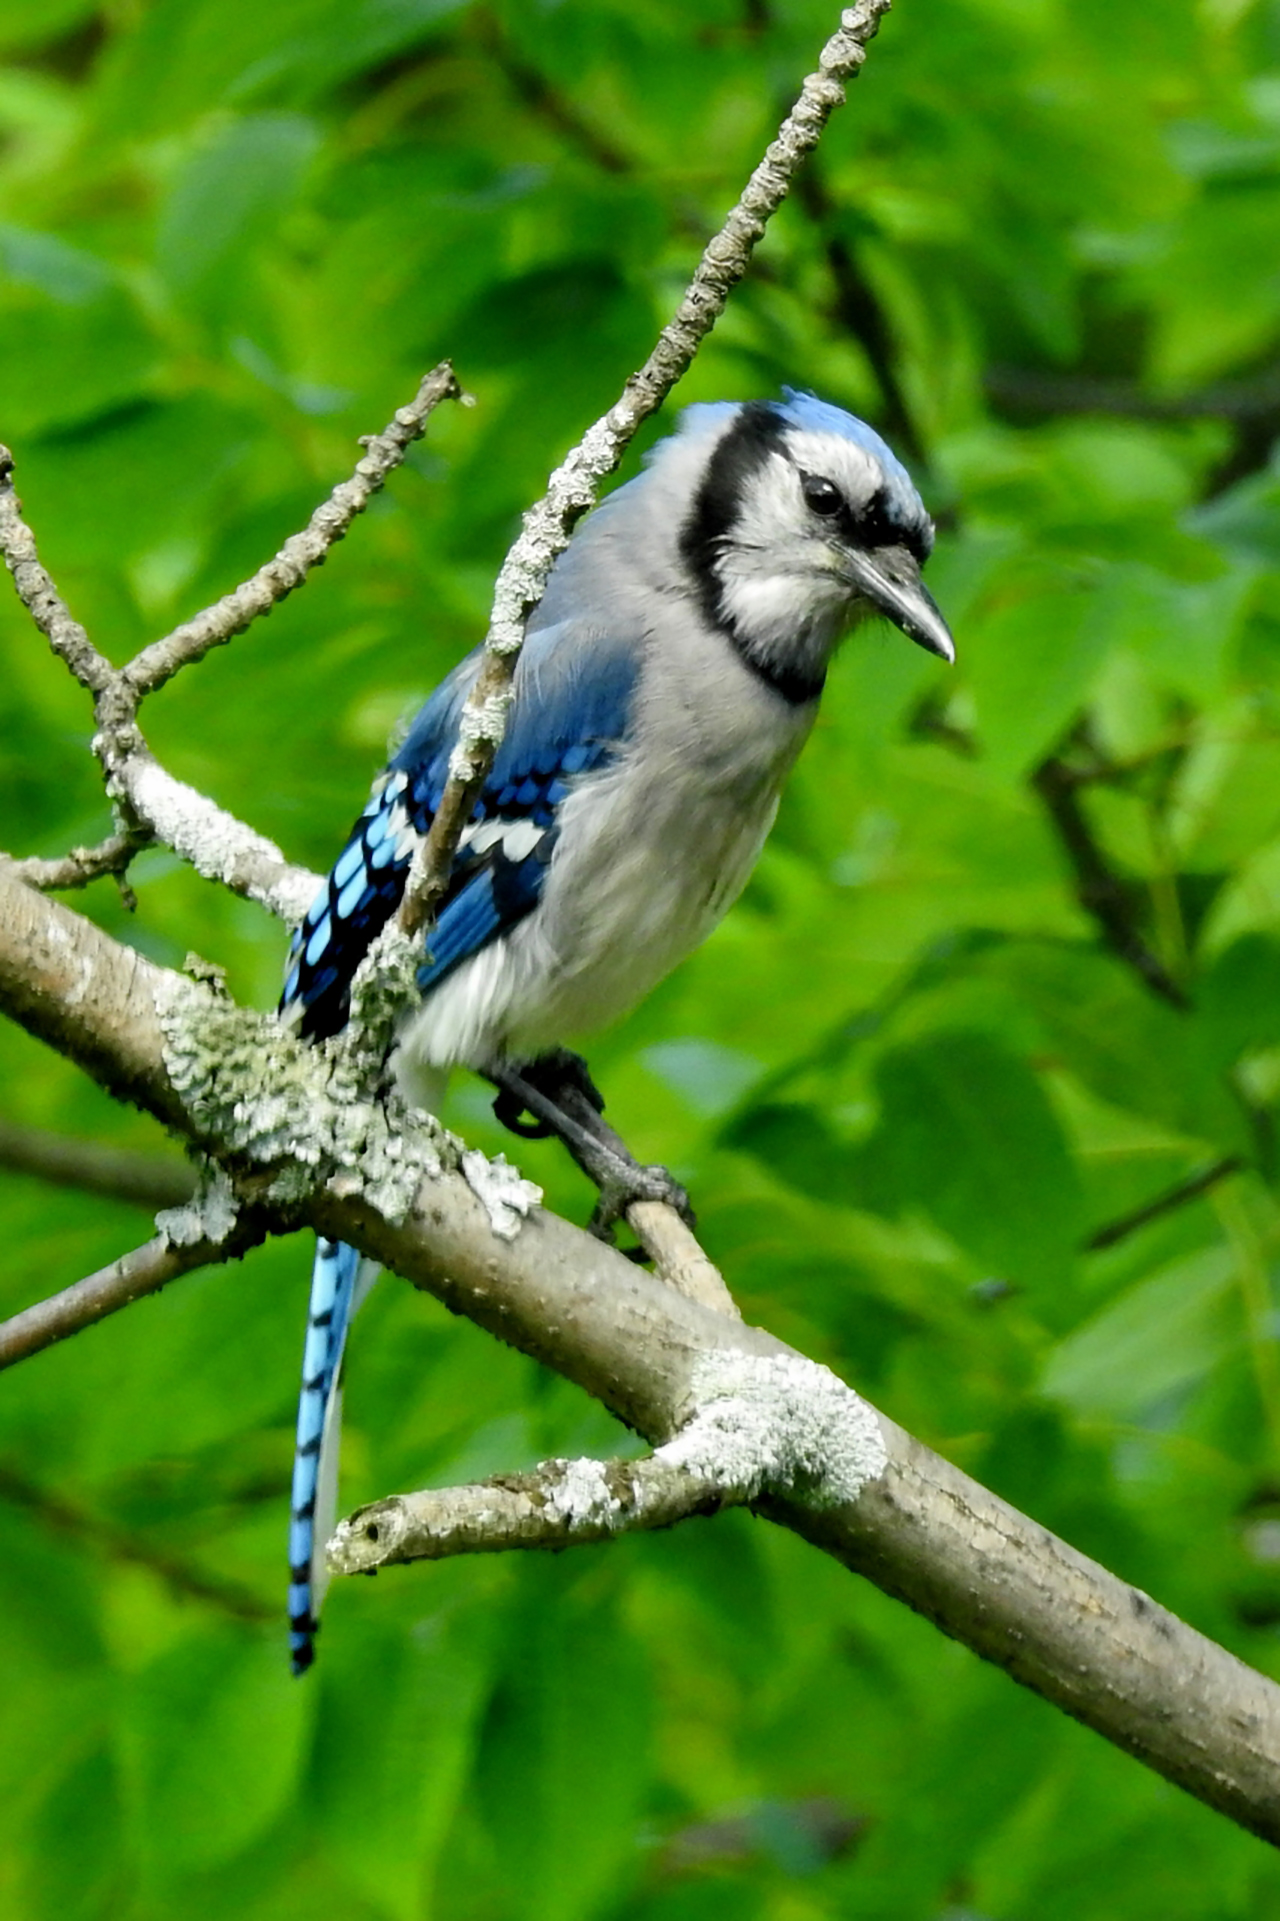 Blue Beauty in Ontario County (photo)